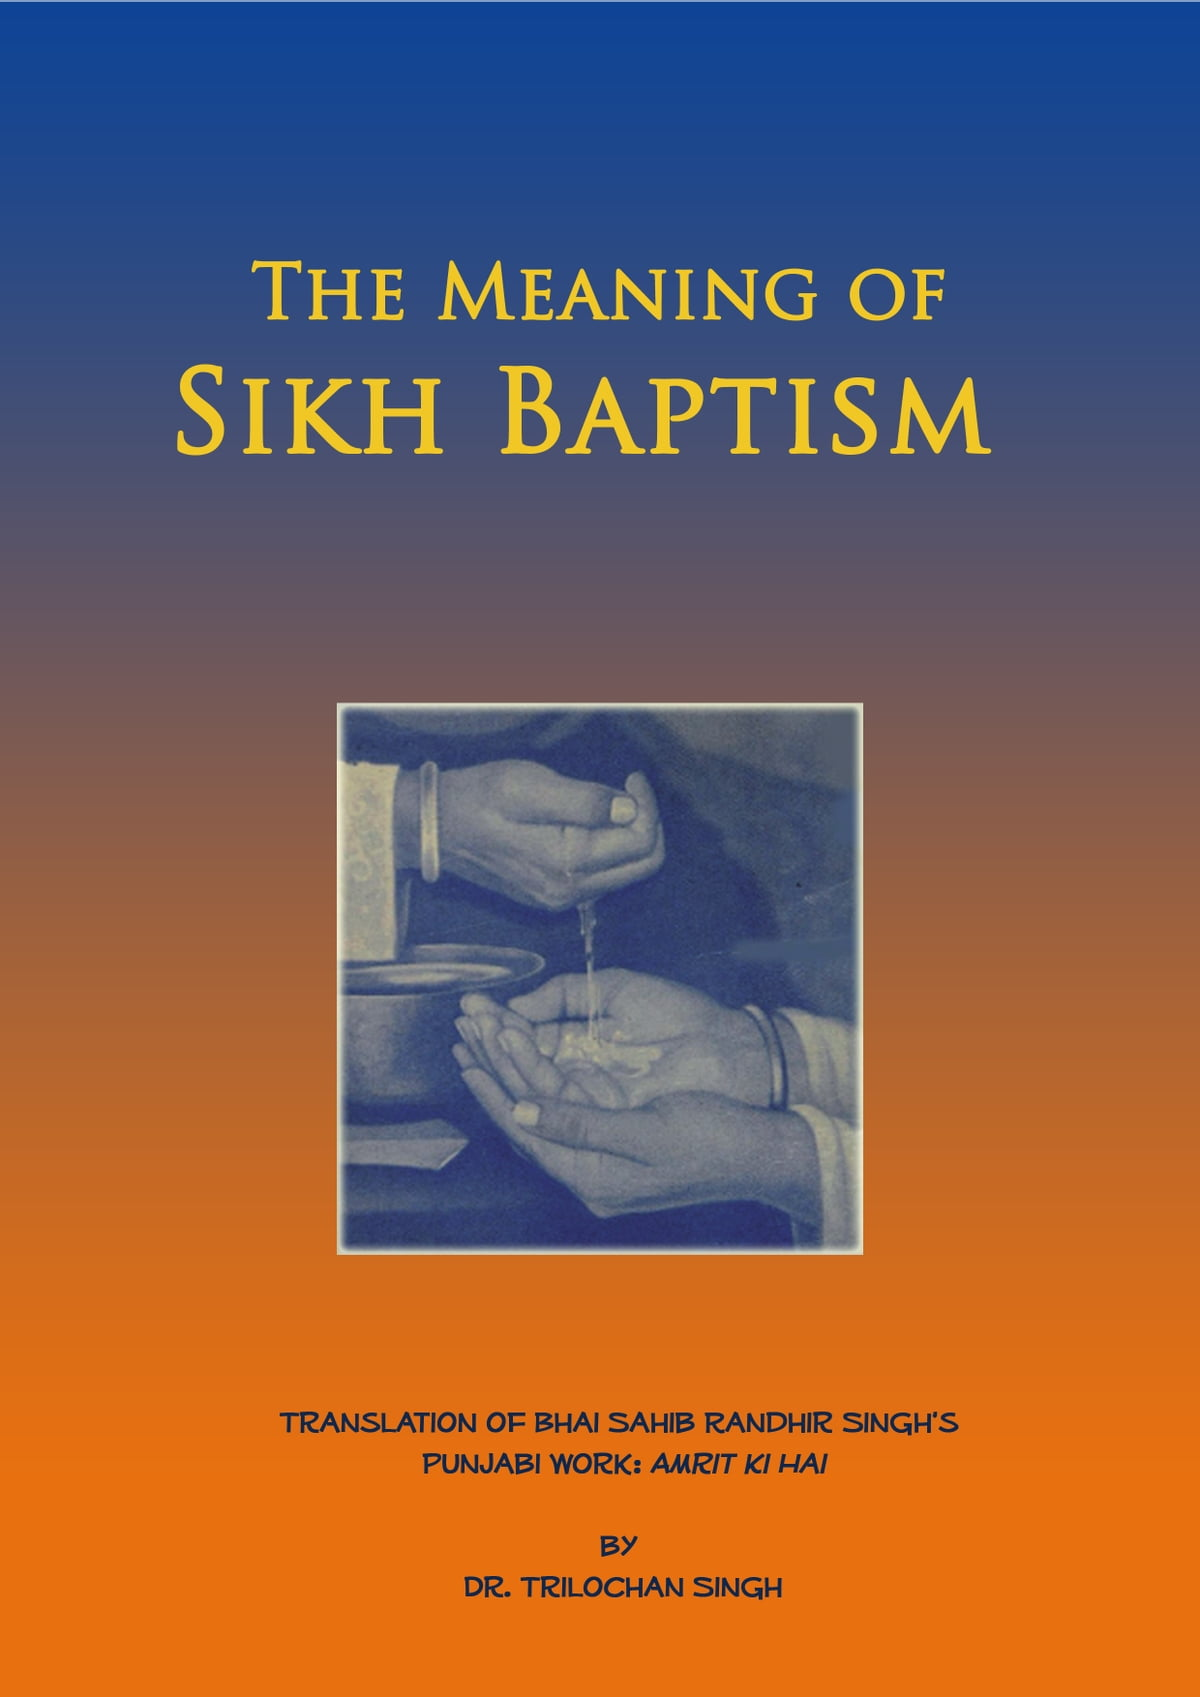 The Meaning of Sikh Baptism eBook by Bhai Sahib Randhir Singh